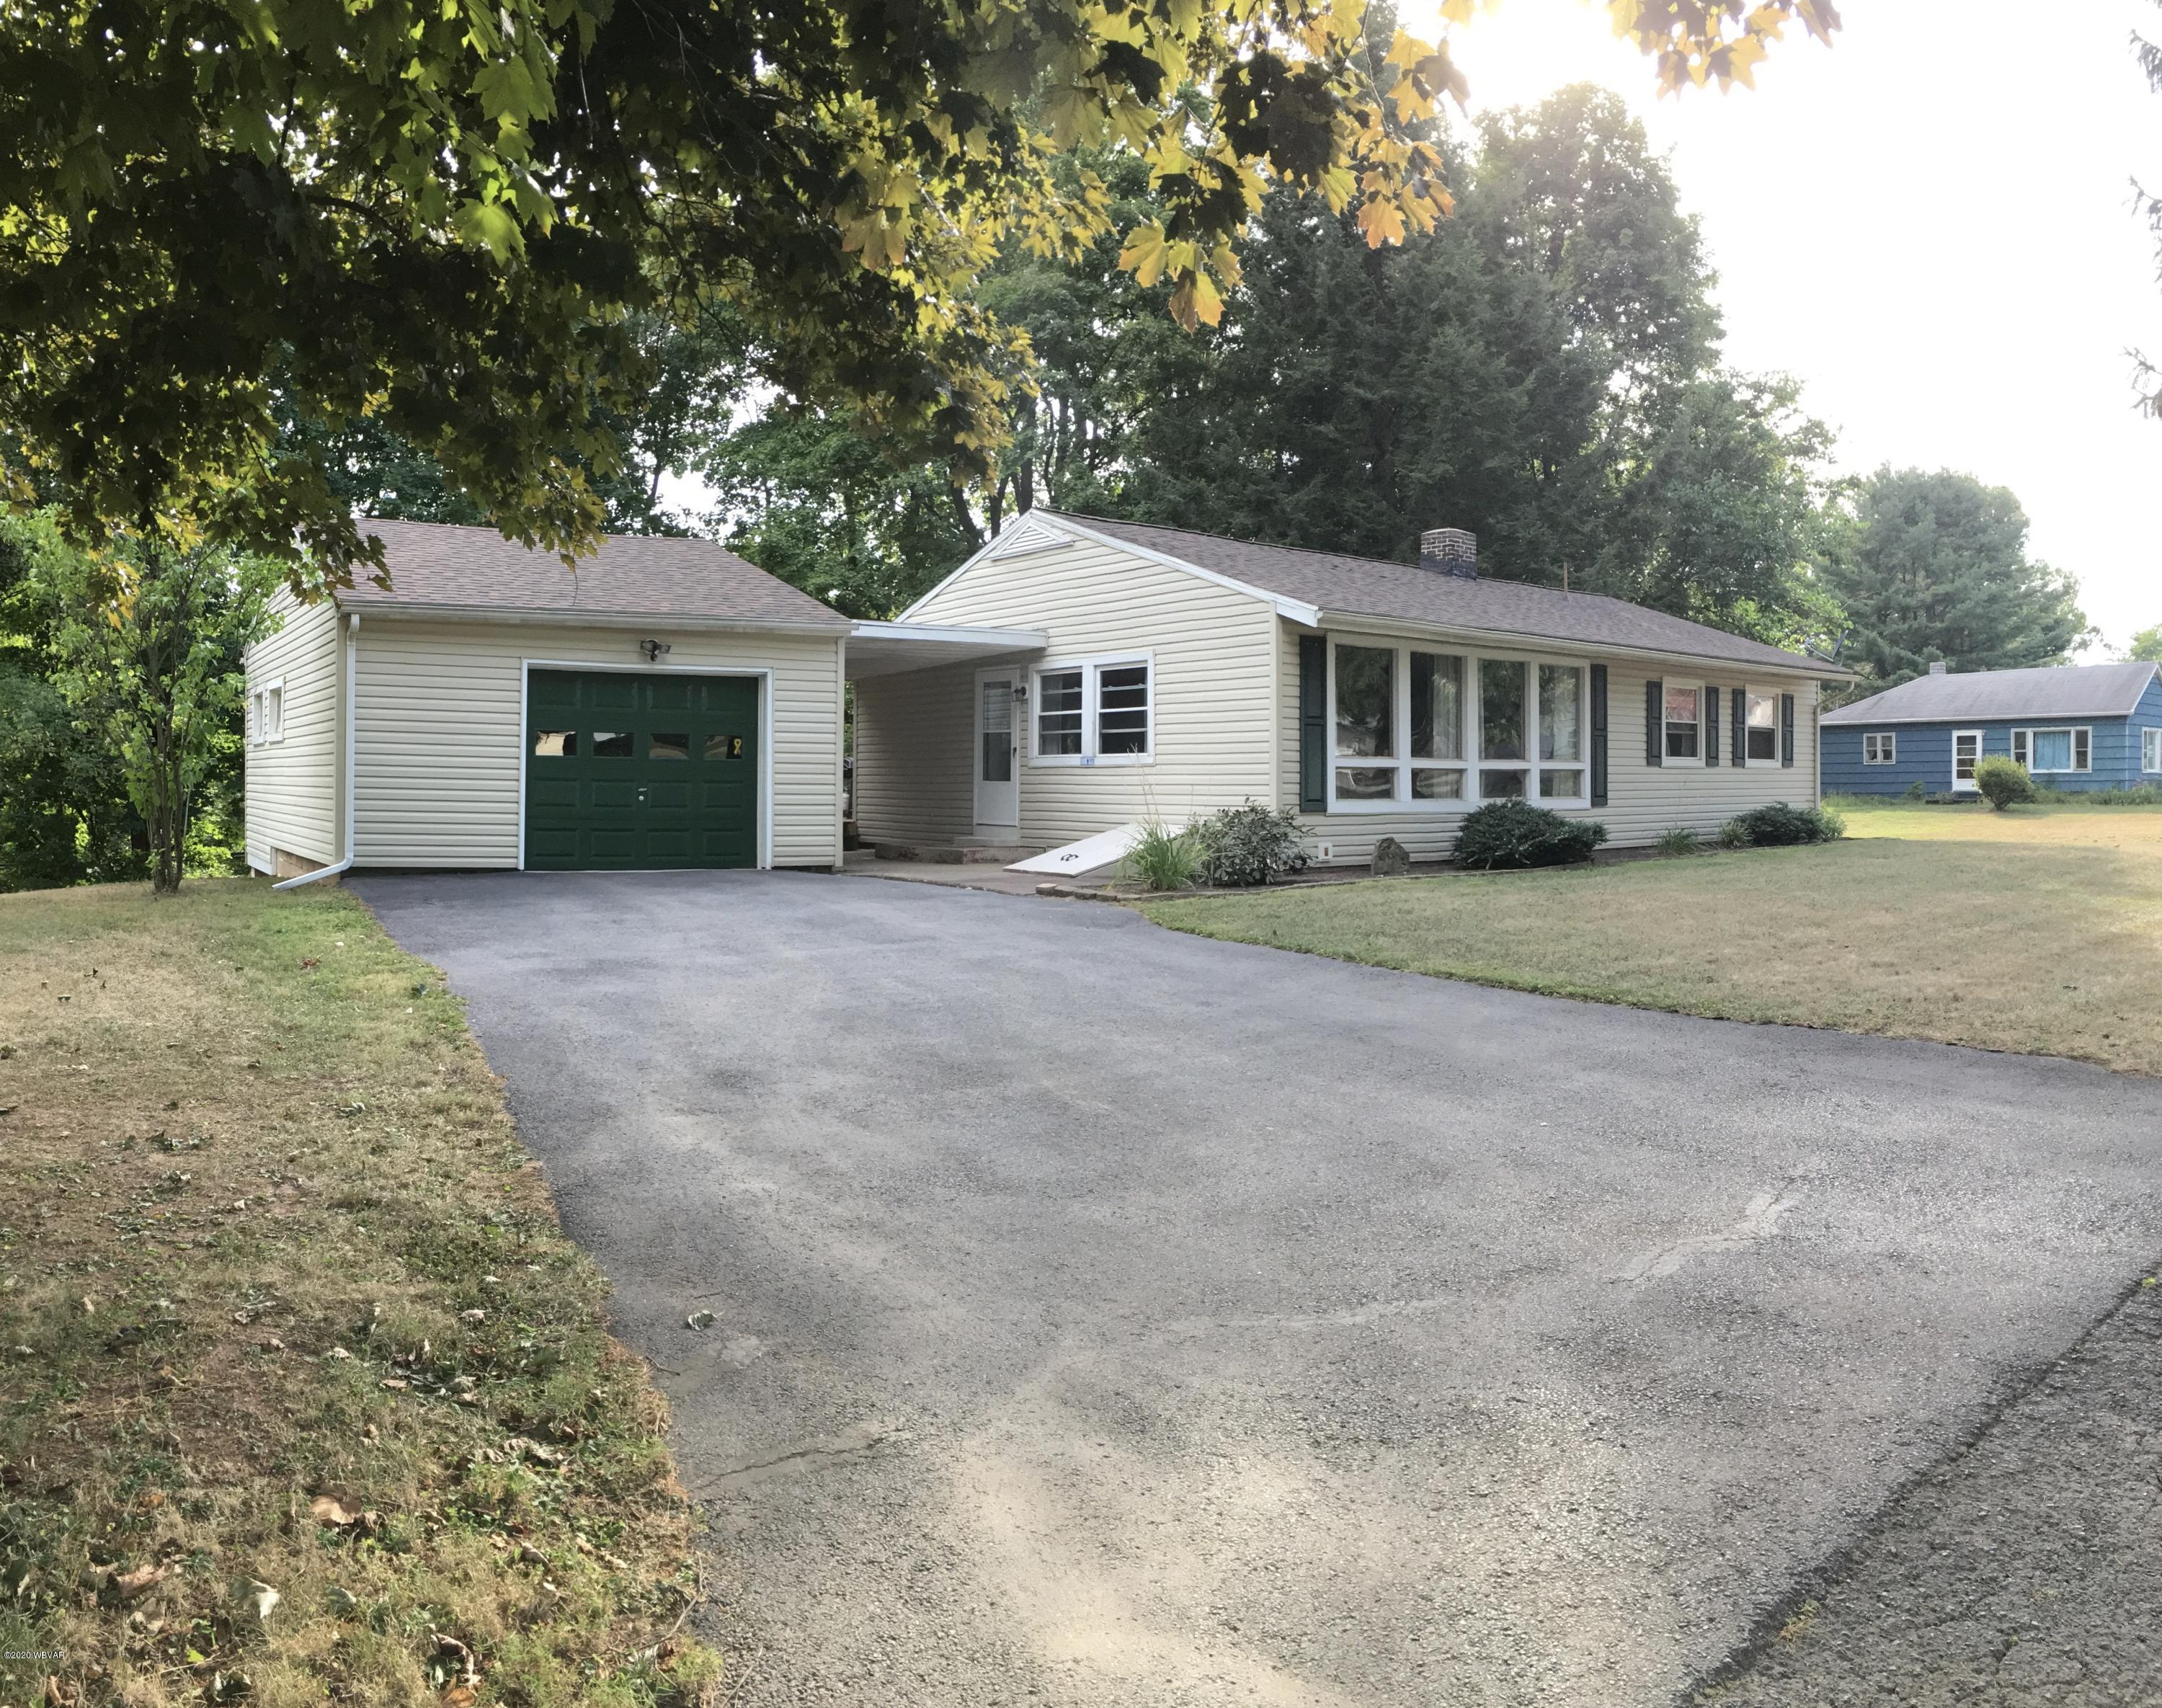 4723 LYCOMING CREEK ROAD, Cogan Station, PA 17728, 3 Bedrooms Bedrooms, ,2 BathroomsBathrooms,Residential,For sale,LYCOMING CREEK,WB-90921